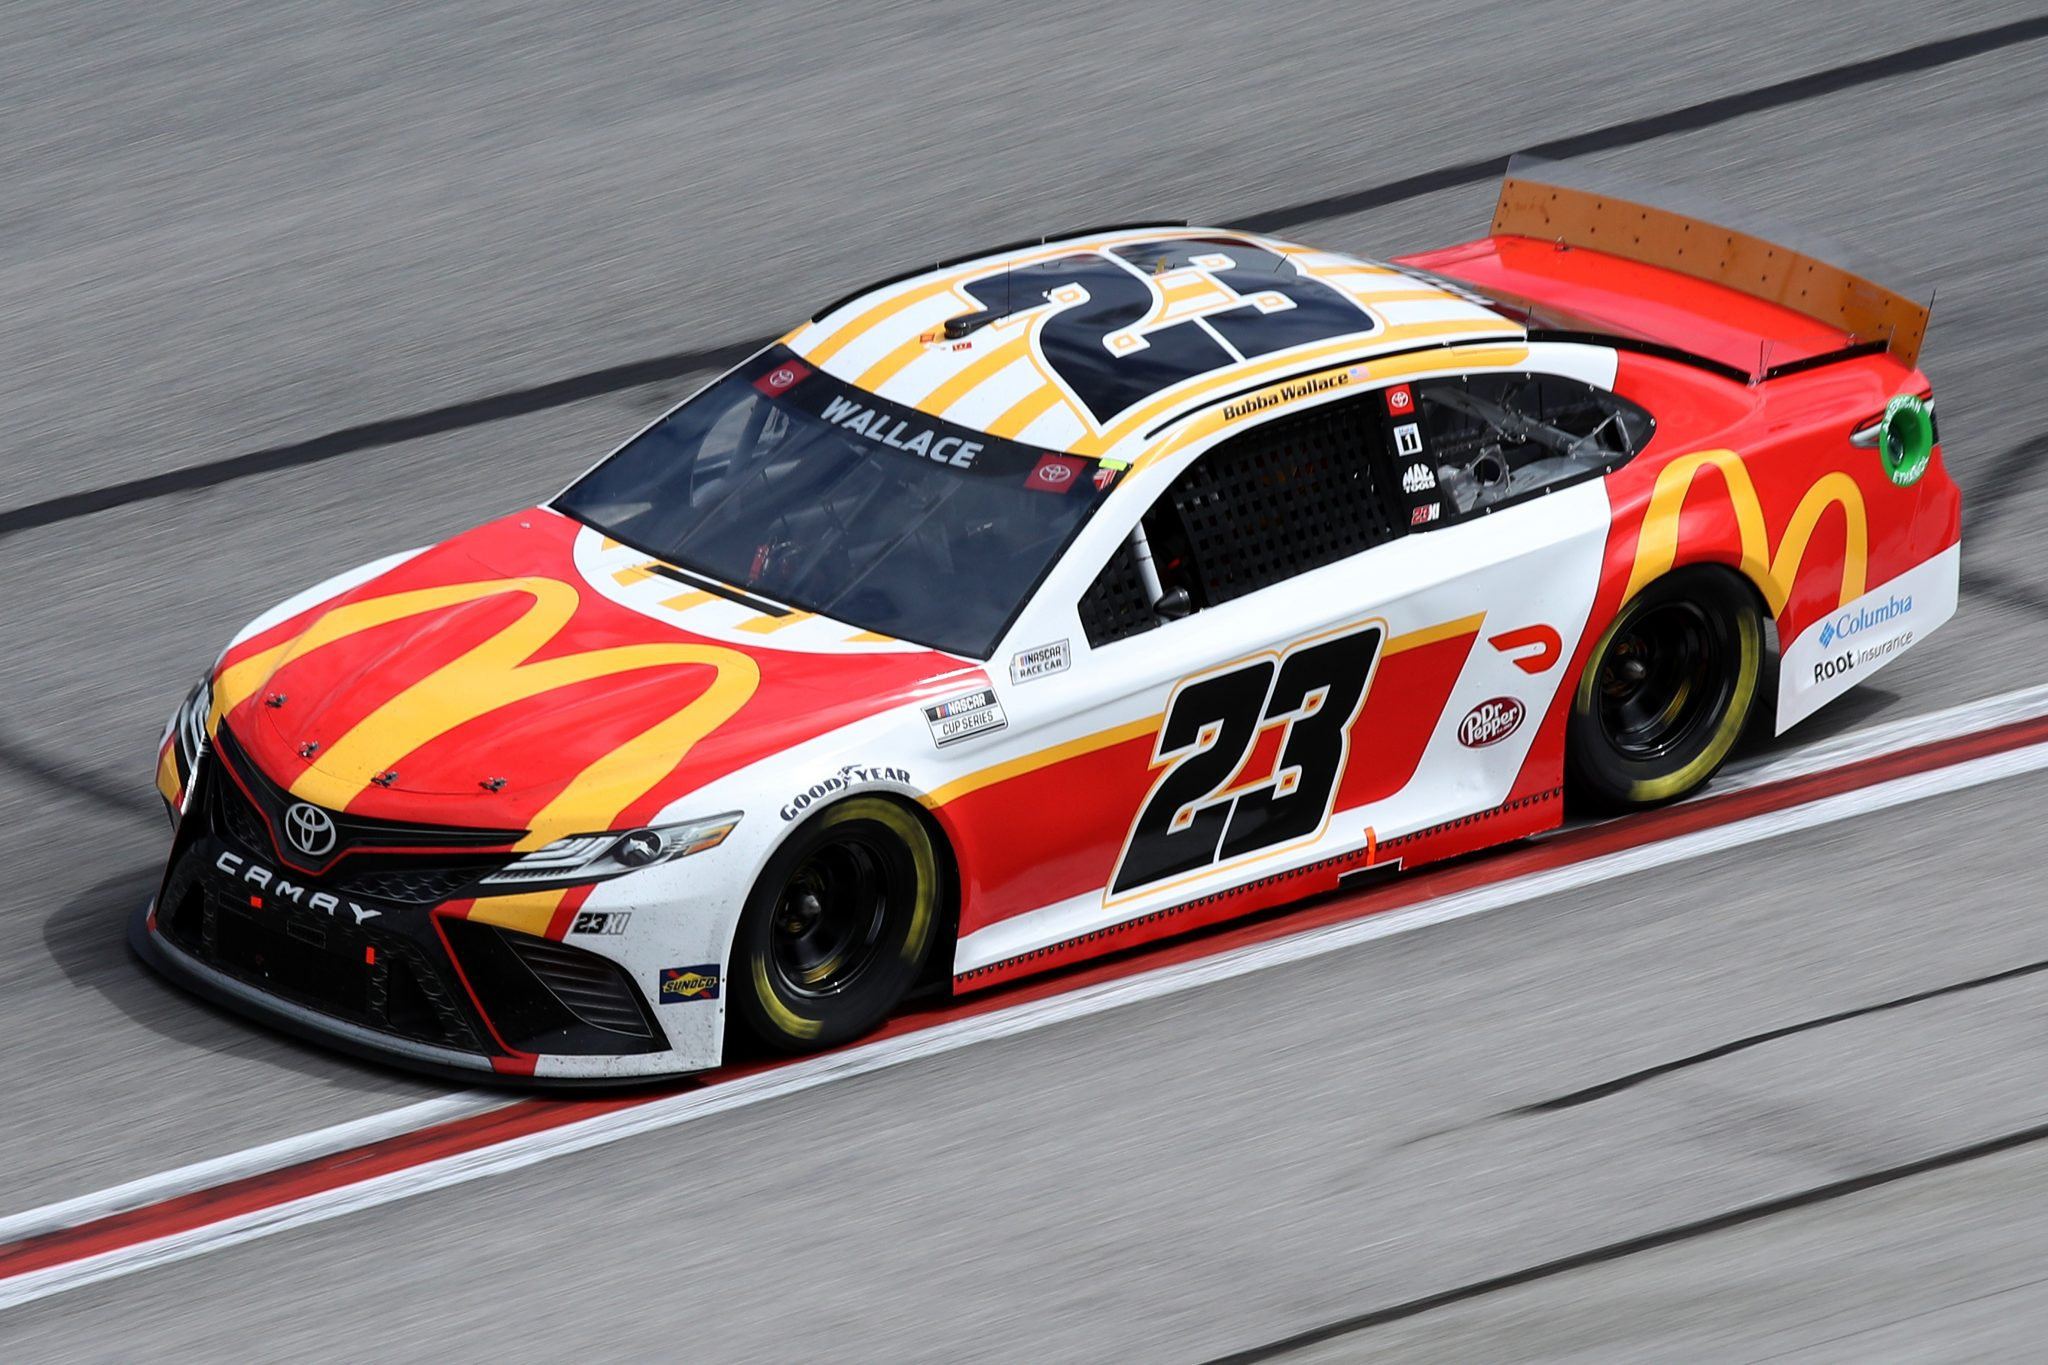 HAMPTON, GEORGIA - MARCH 21: Bubba Wallace, driver of the #23 McDonalds Toyota, drives during the NASCAR Cup Series Folds of Honor QuikTrip 500 at Atlanta Motor Speedway on March 21, 2021 in Hampton, Georgia. (Photo by Sean Gardner/Getty Images) | Getty Images